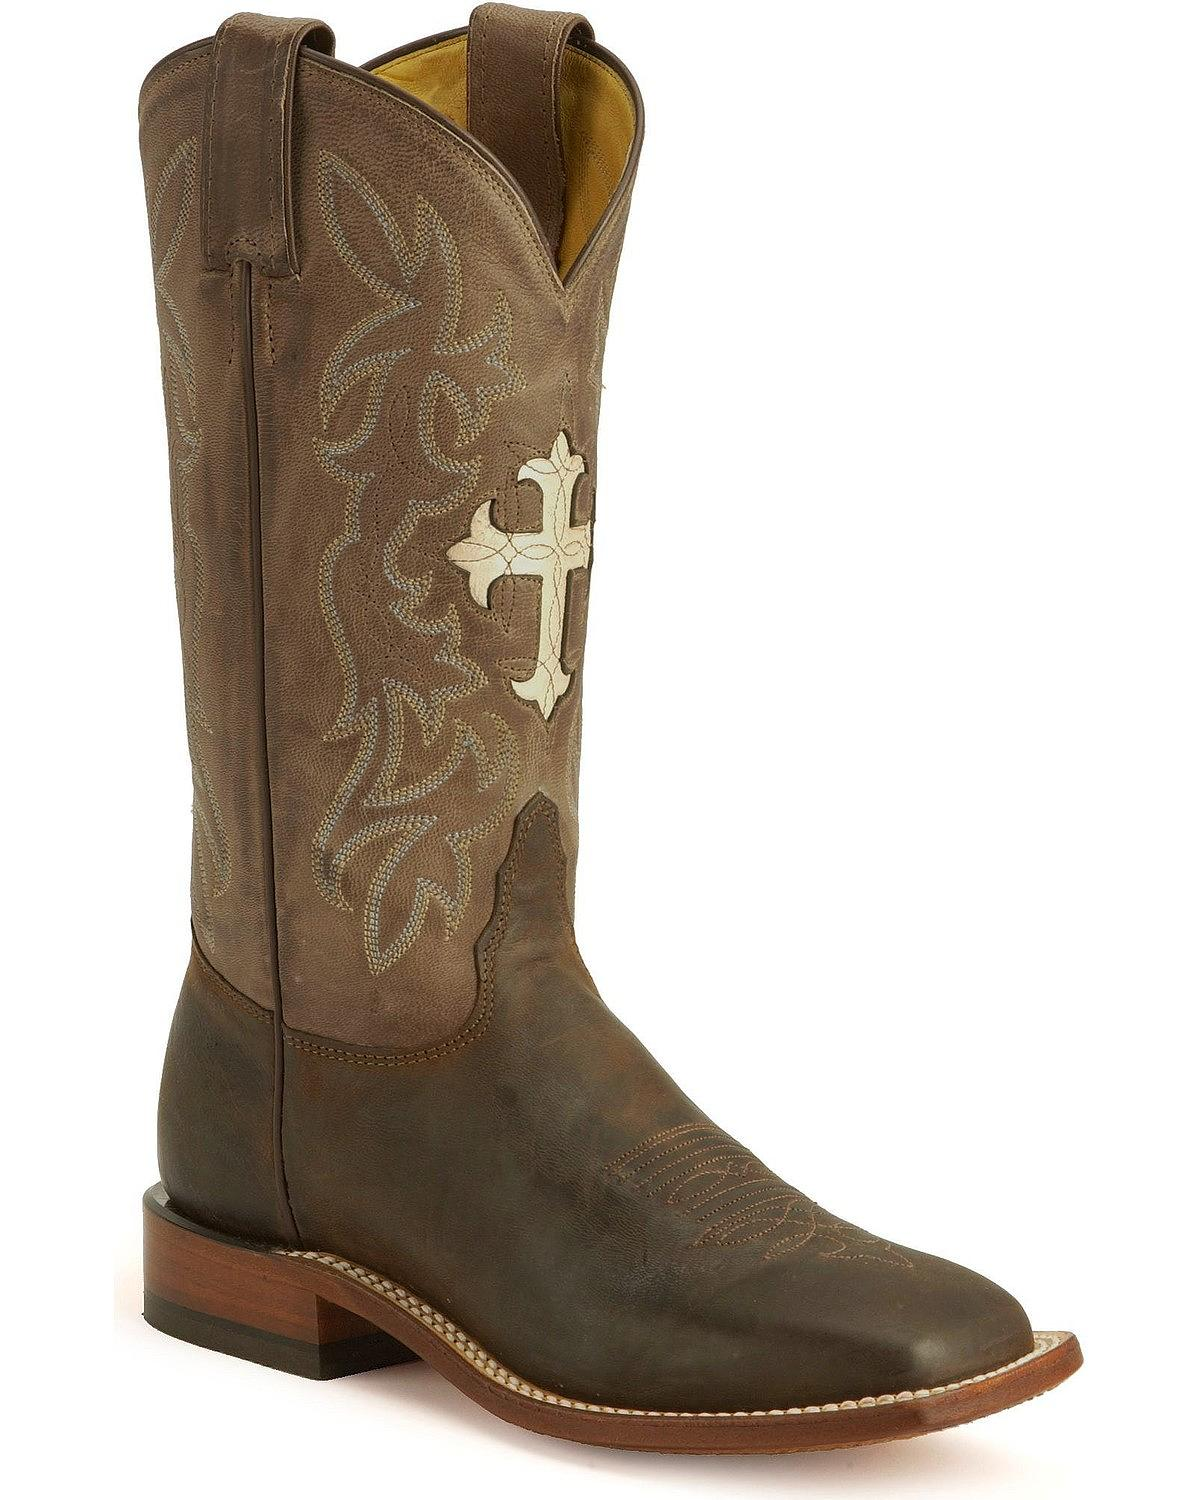 Tony Lama Women's Cross Inlay Cowgirl Boot Tc1002l by Tony Lama